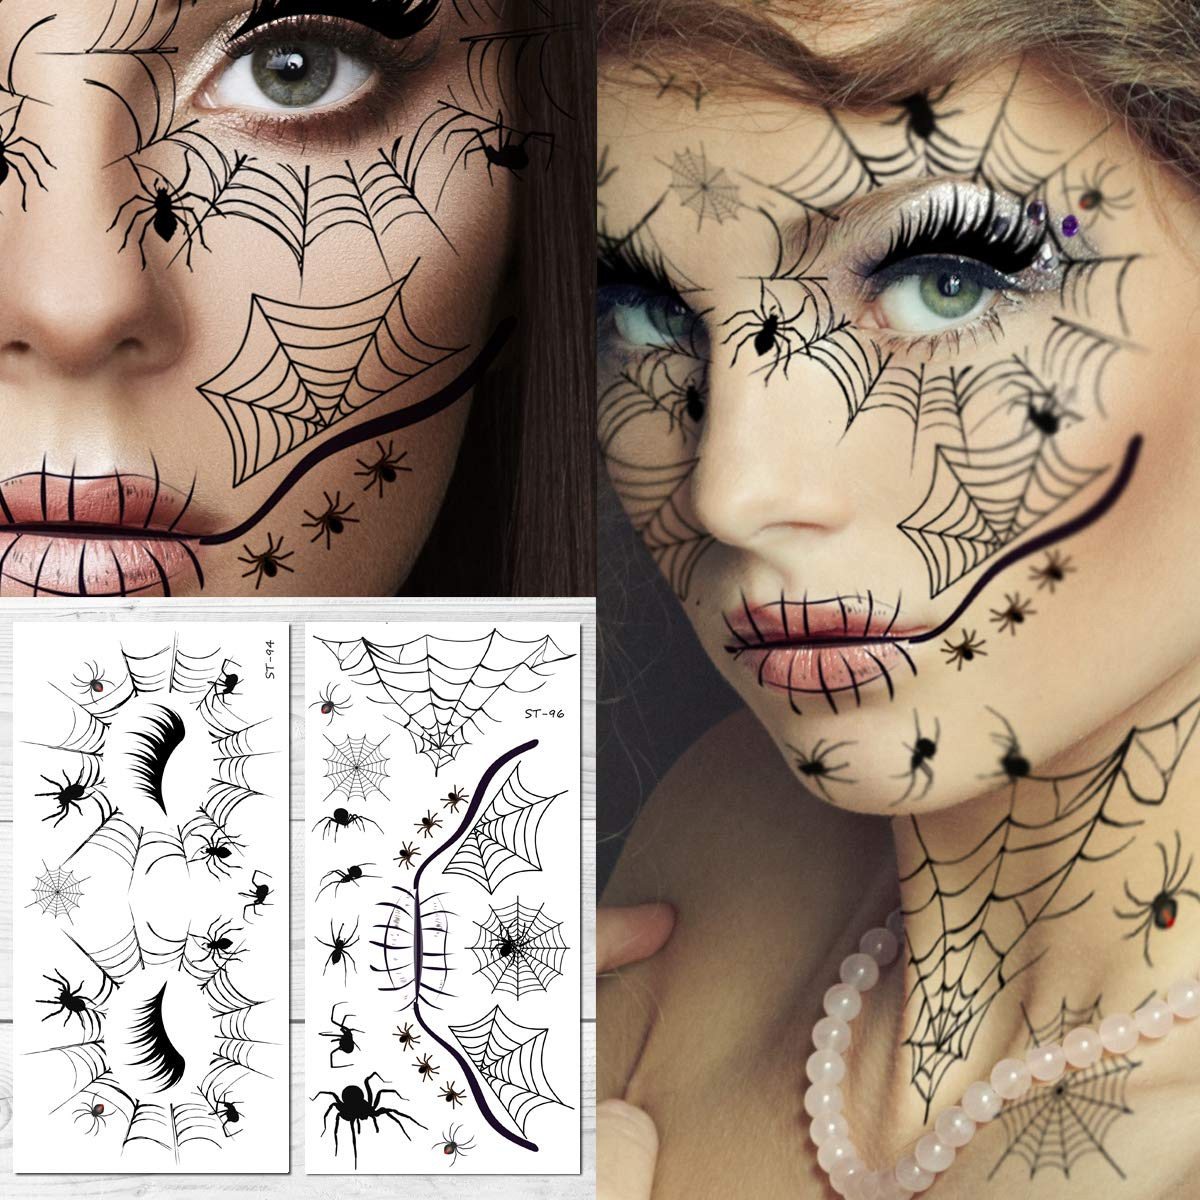 Supperb Halloween Face Tattoo Spider Temporary Face Tattoo Kit (Pack of 2)